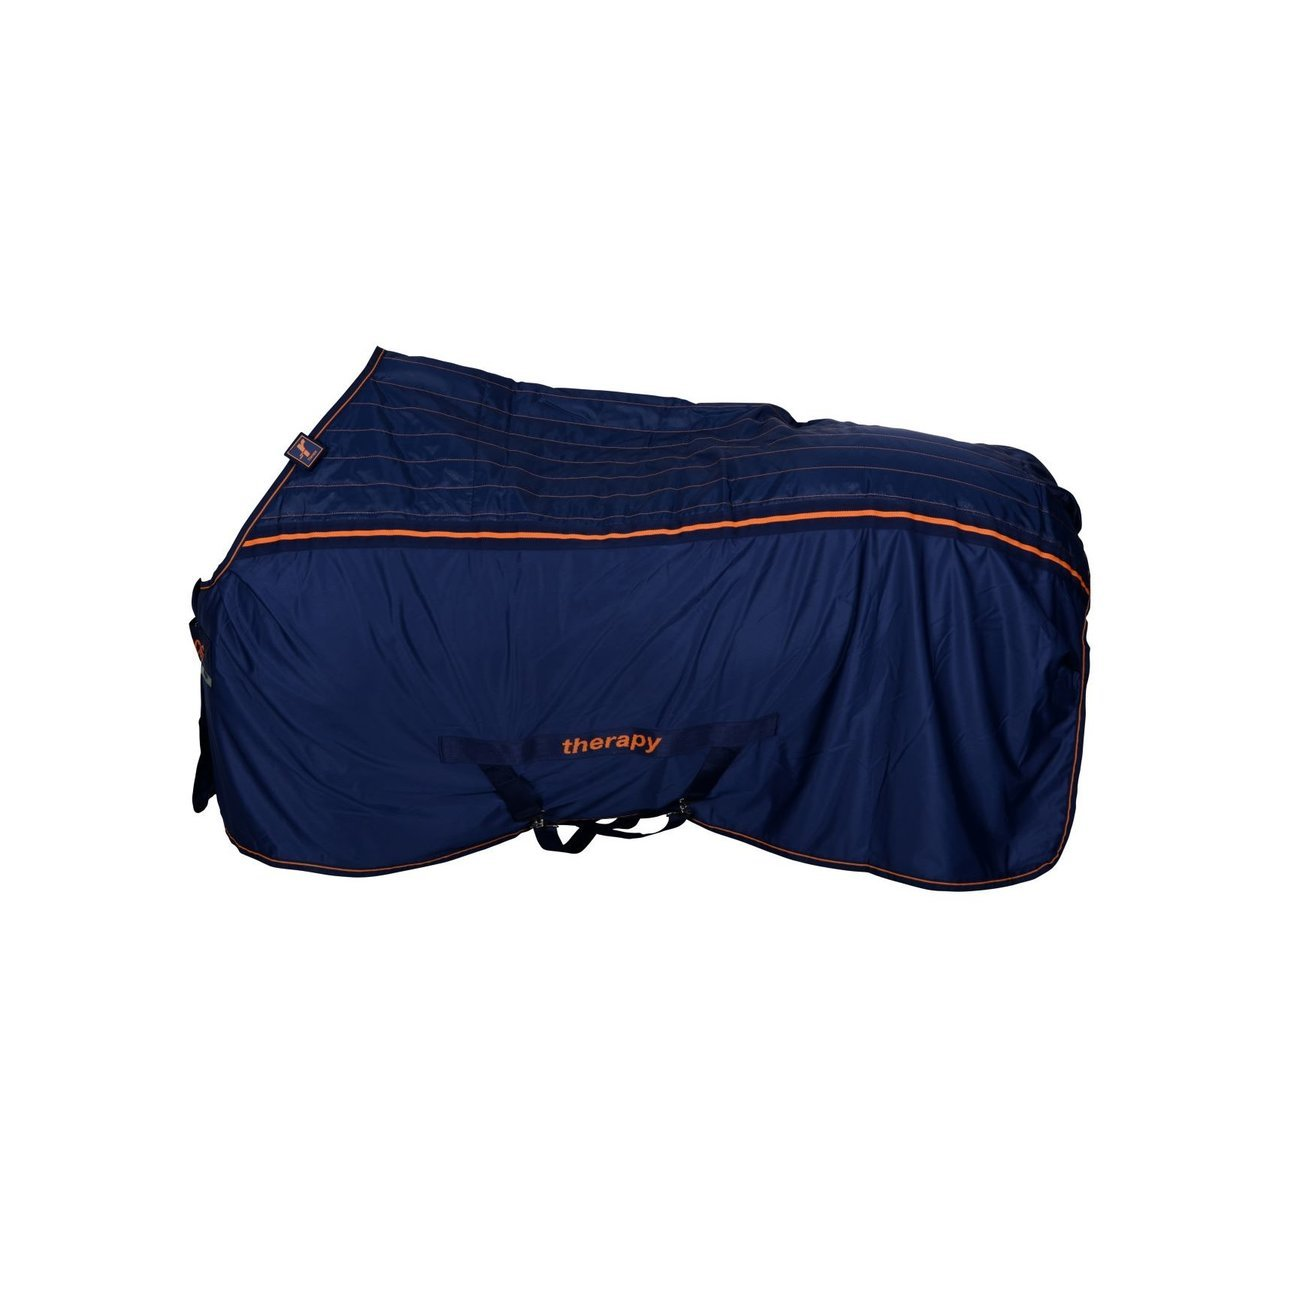 Bucas Recuptex Therapiedecke Pferd, Gr. 140 - Navy/Orange